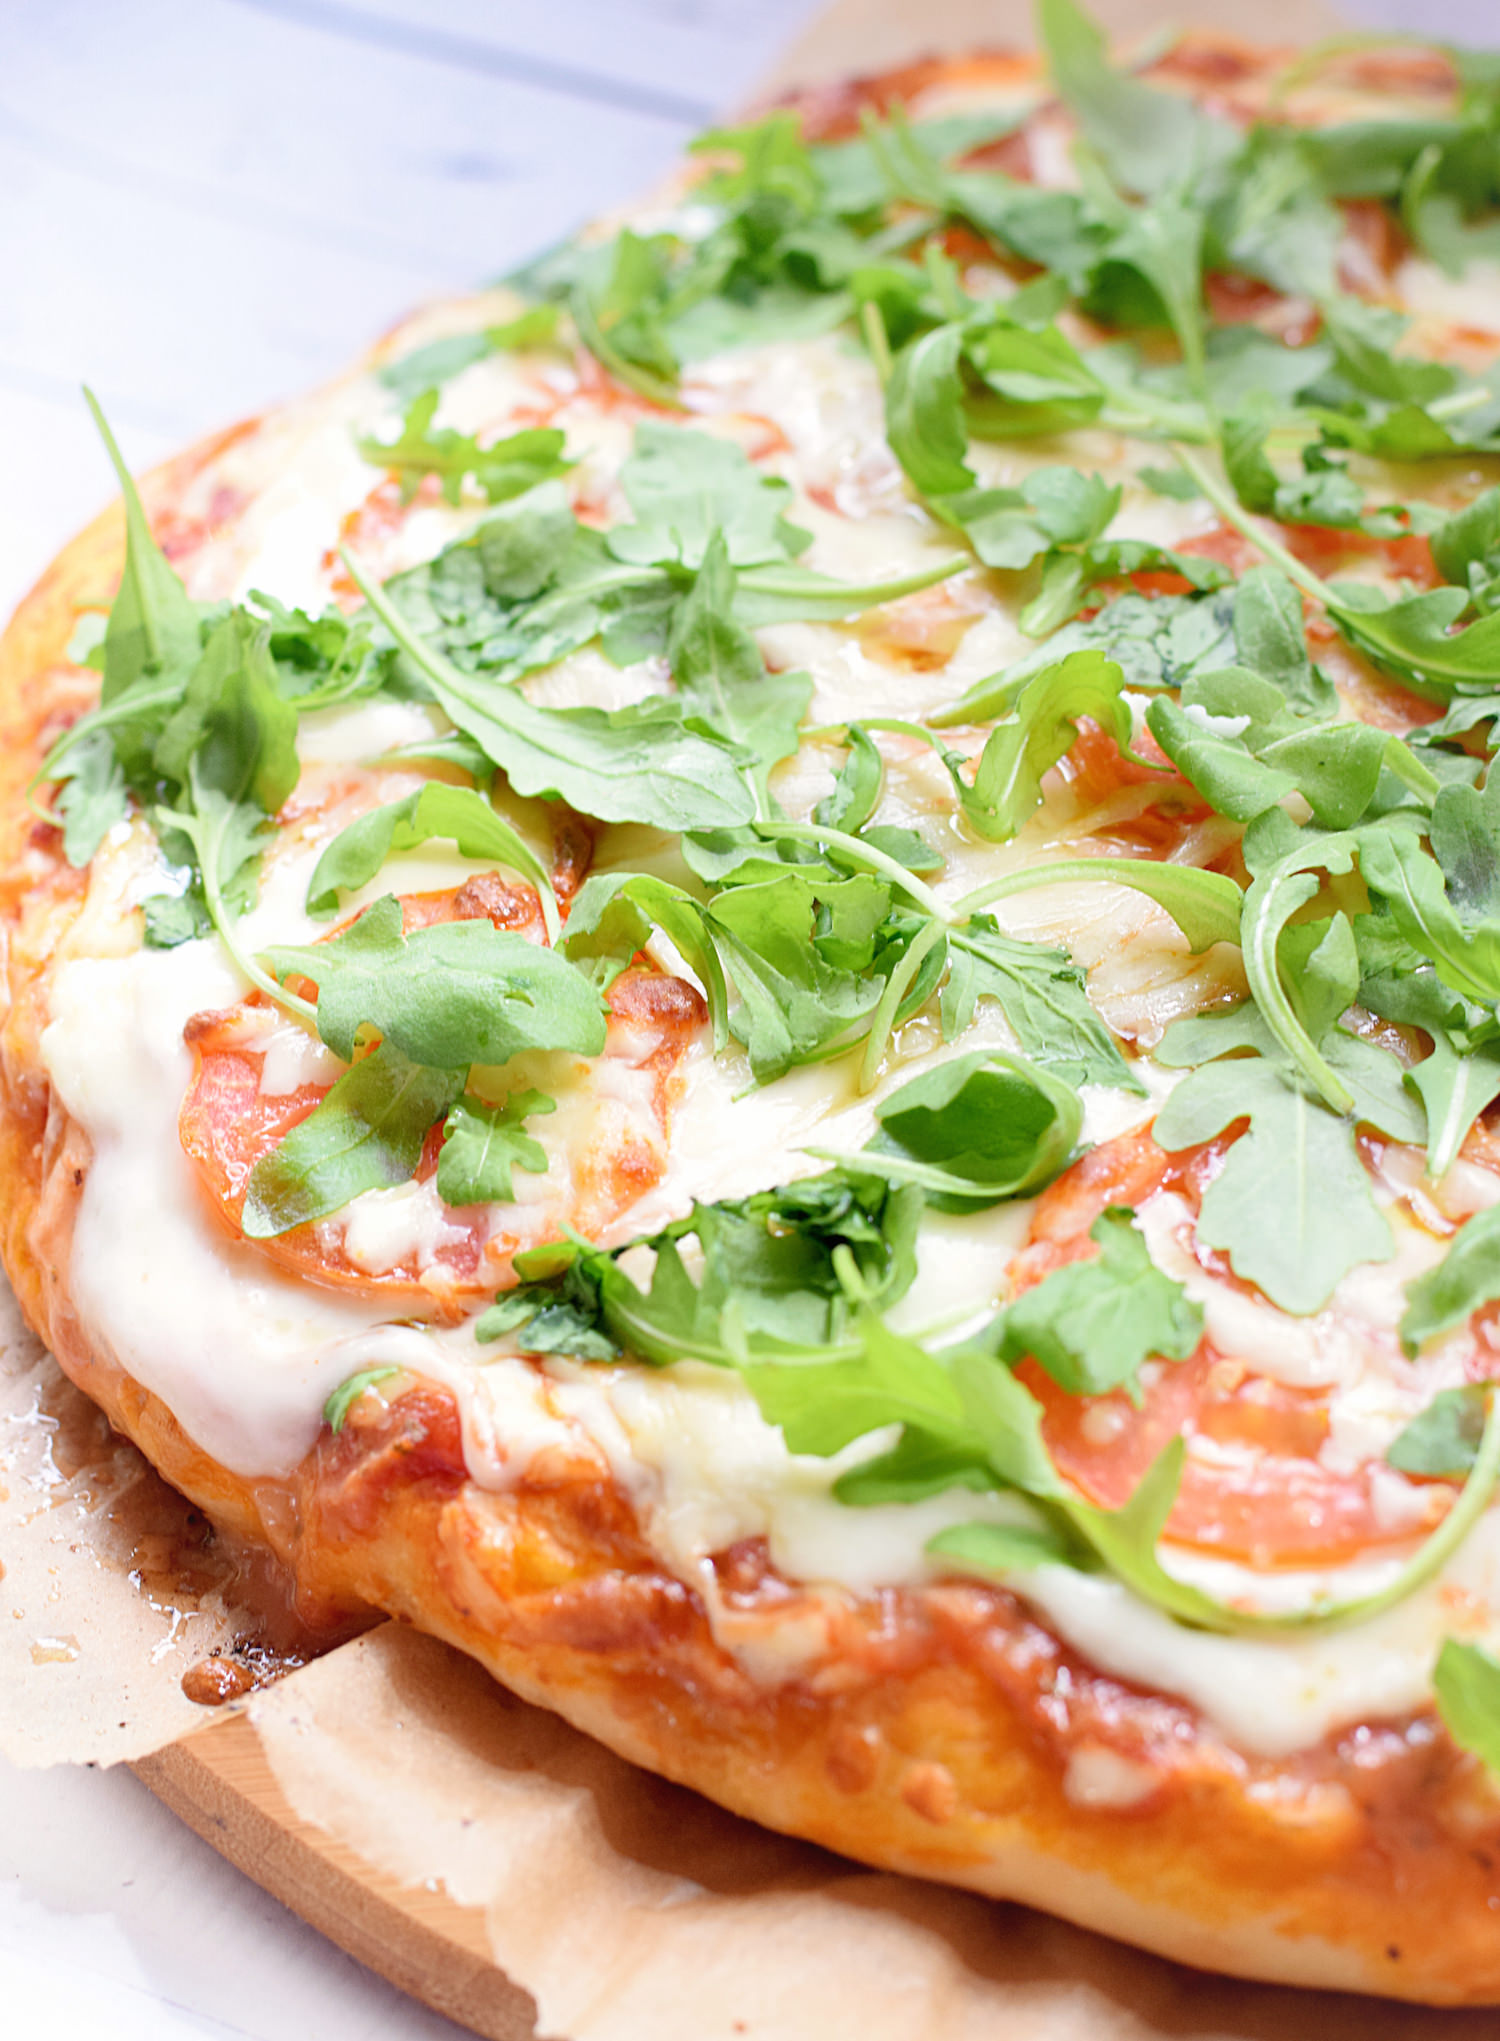 Favorite Homemade Pizza: soft and chewy pizza crust, flavorful tomato sauce, and your favorite cheese and toppings. Best homemade pizza! | TrufflesandTrends.com